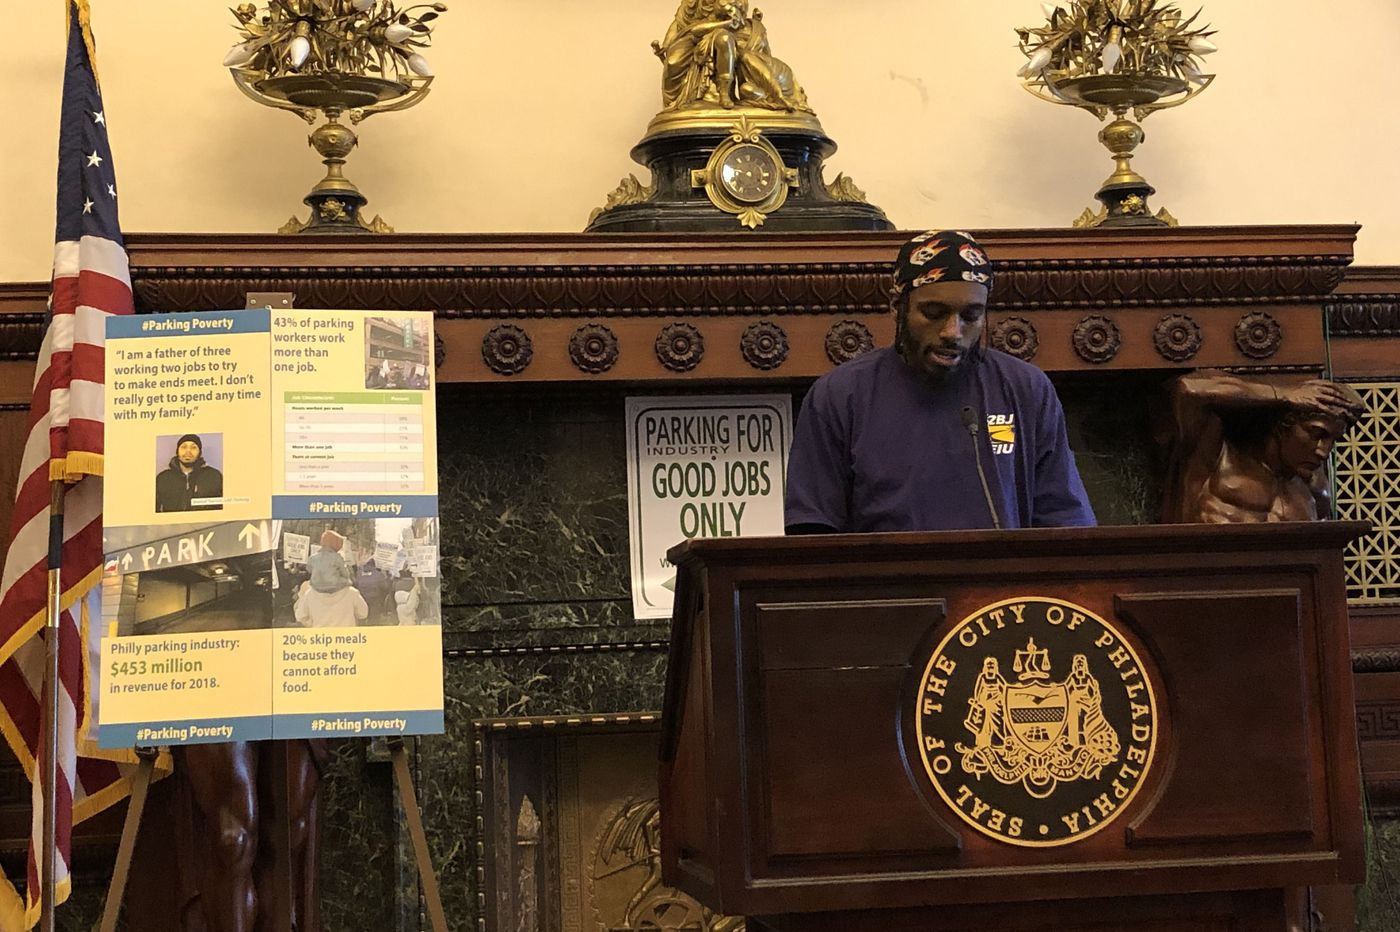 Philly City Council members pledge support for workers at hearing on 'poverty wages' in parking industry